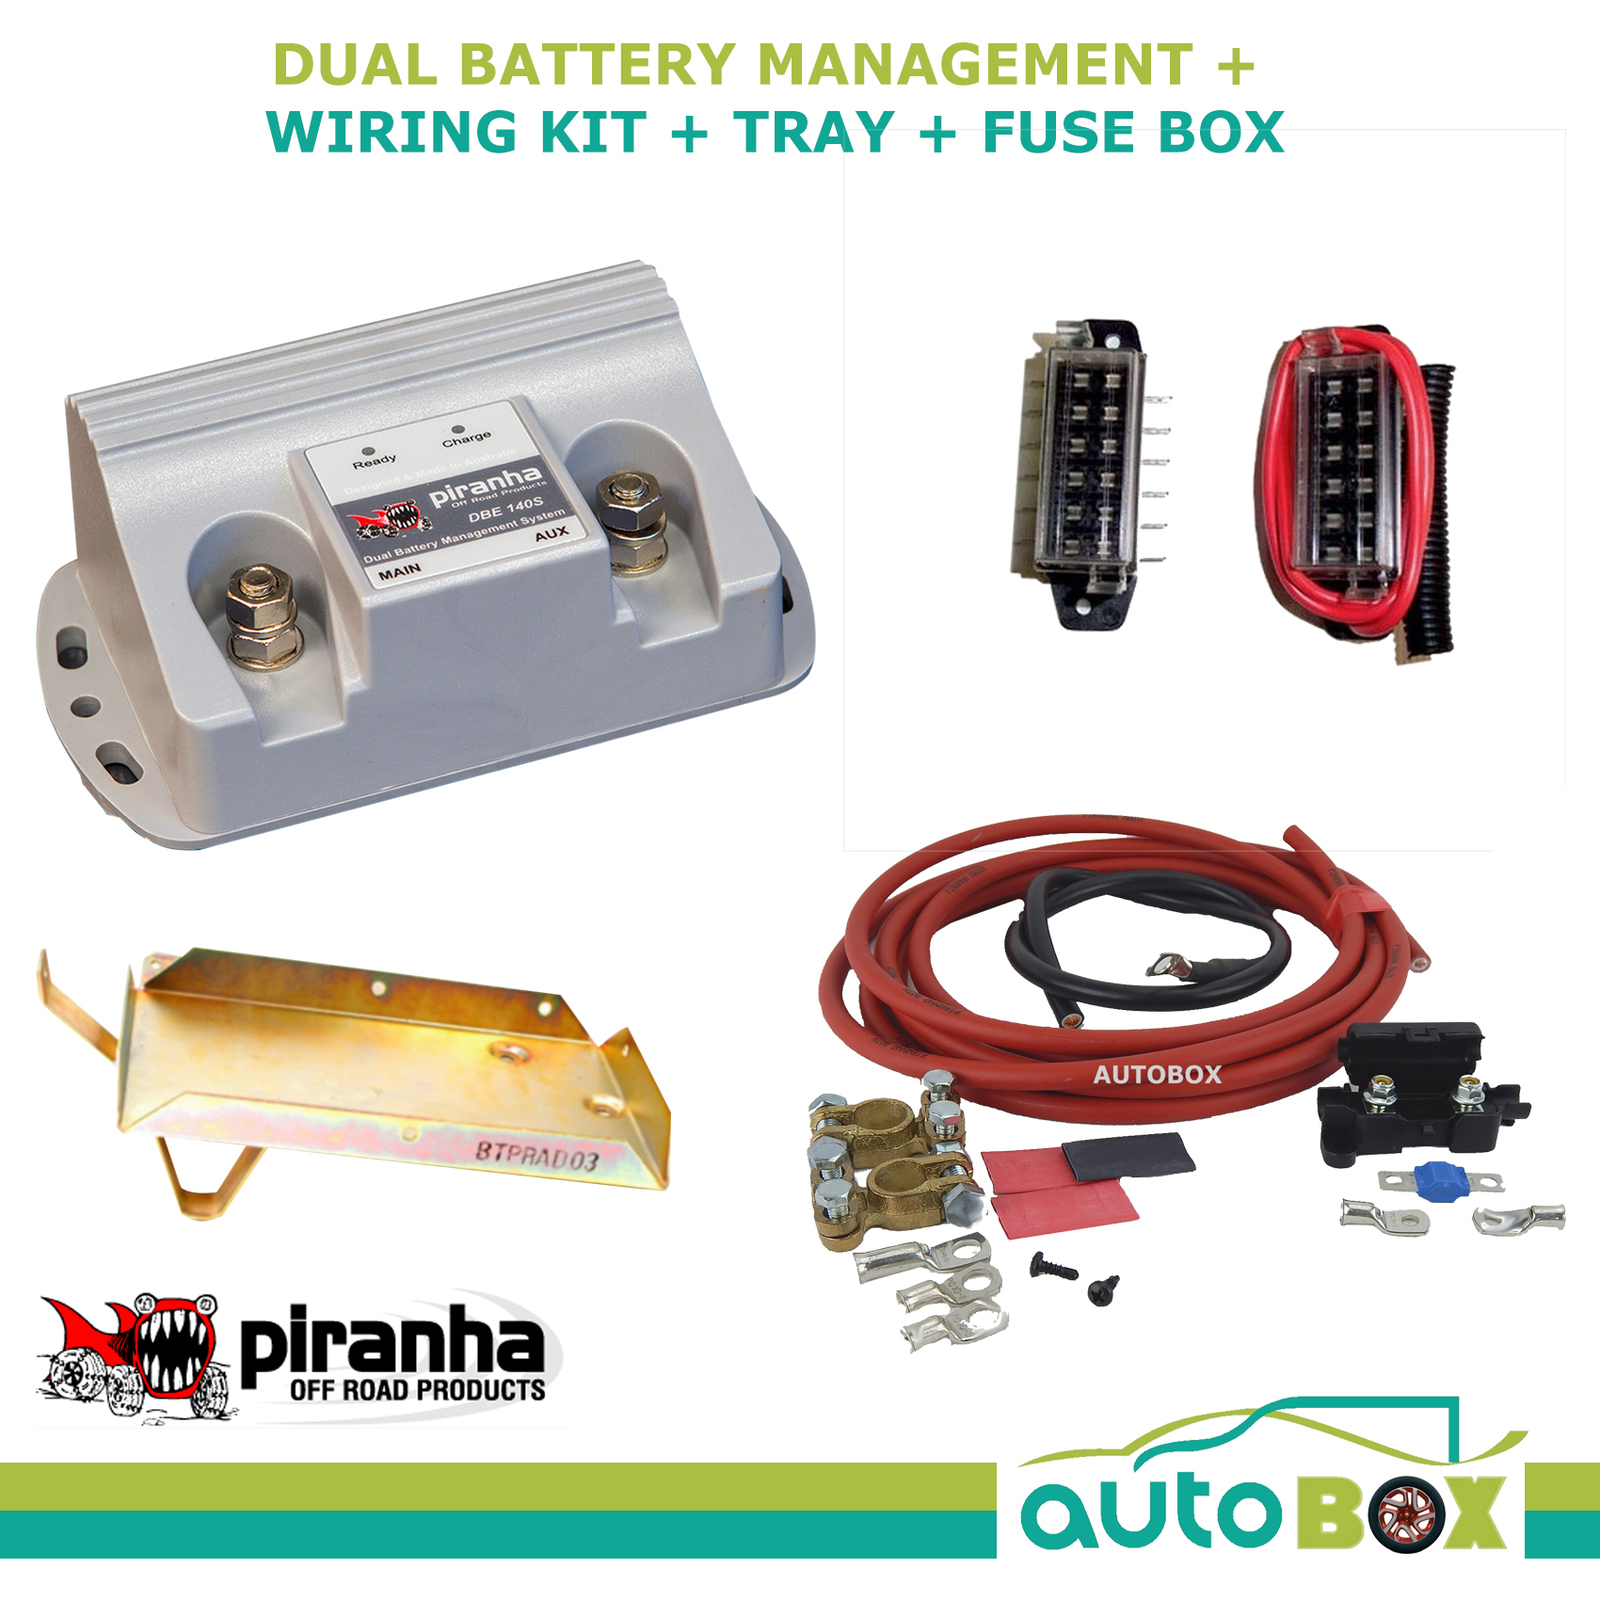 piranha dual battery system wiring diagram corporate building rem koolhaas isolator 44